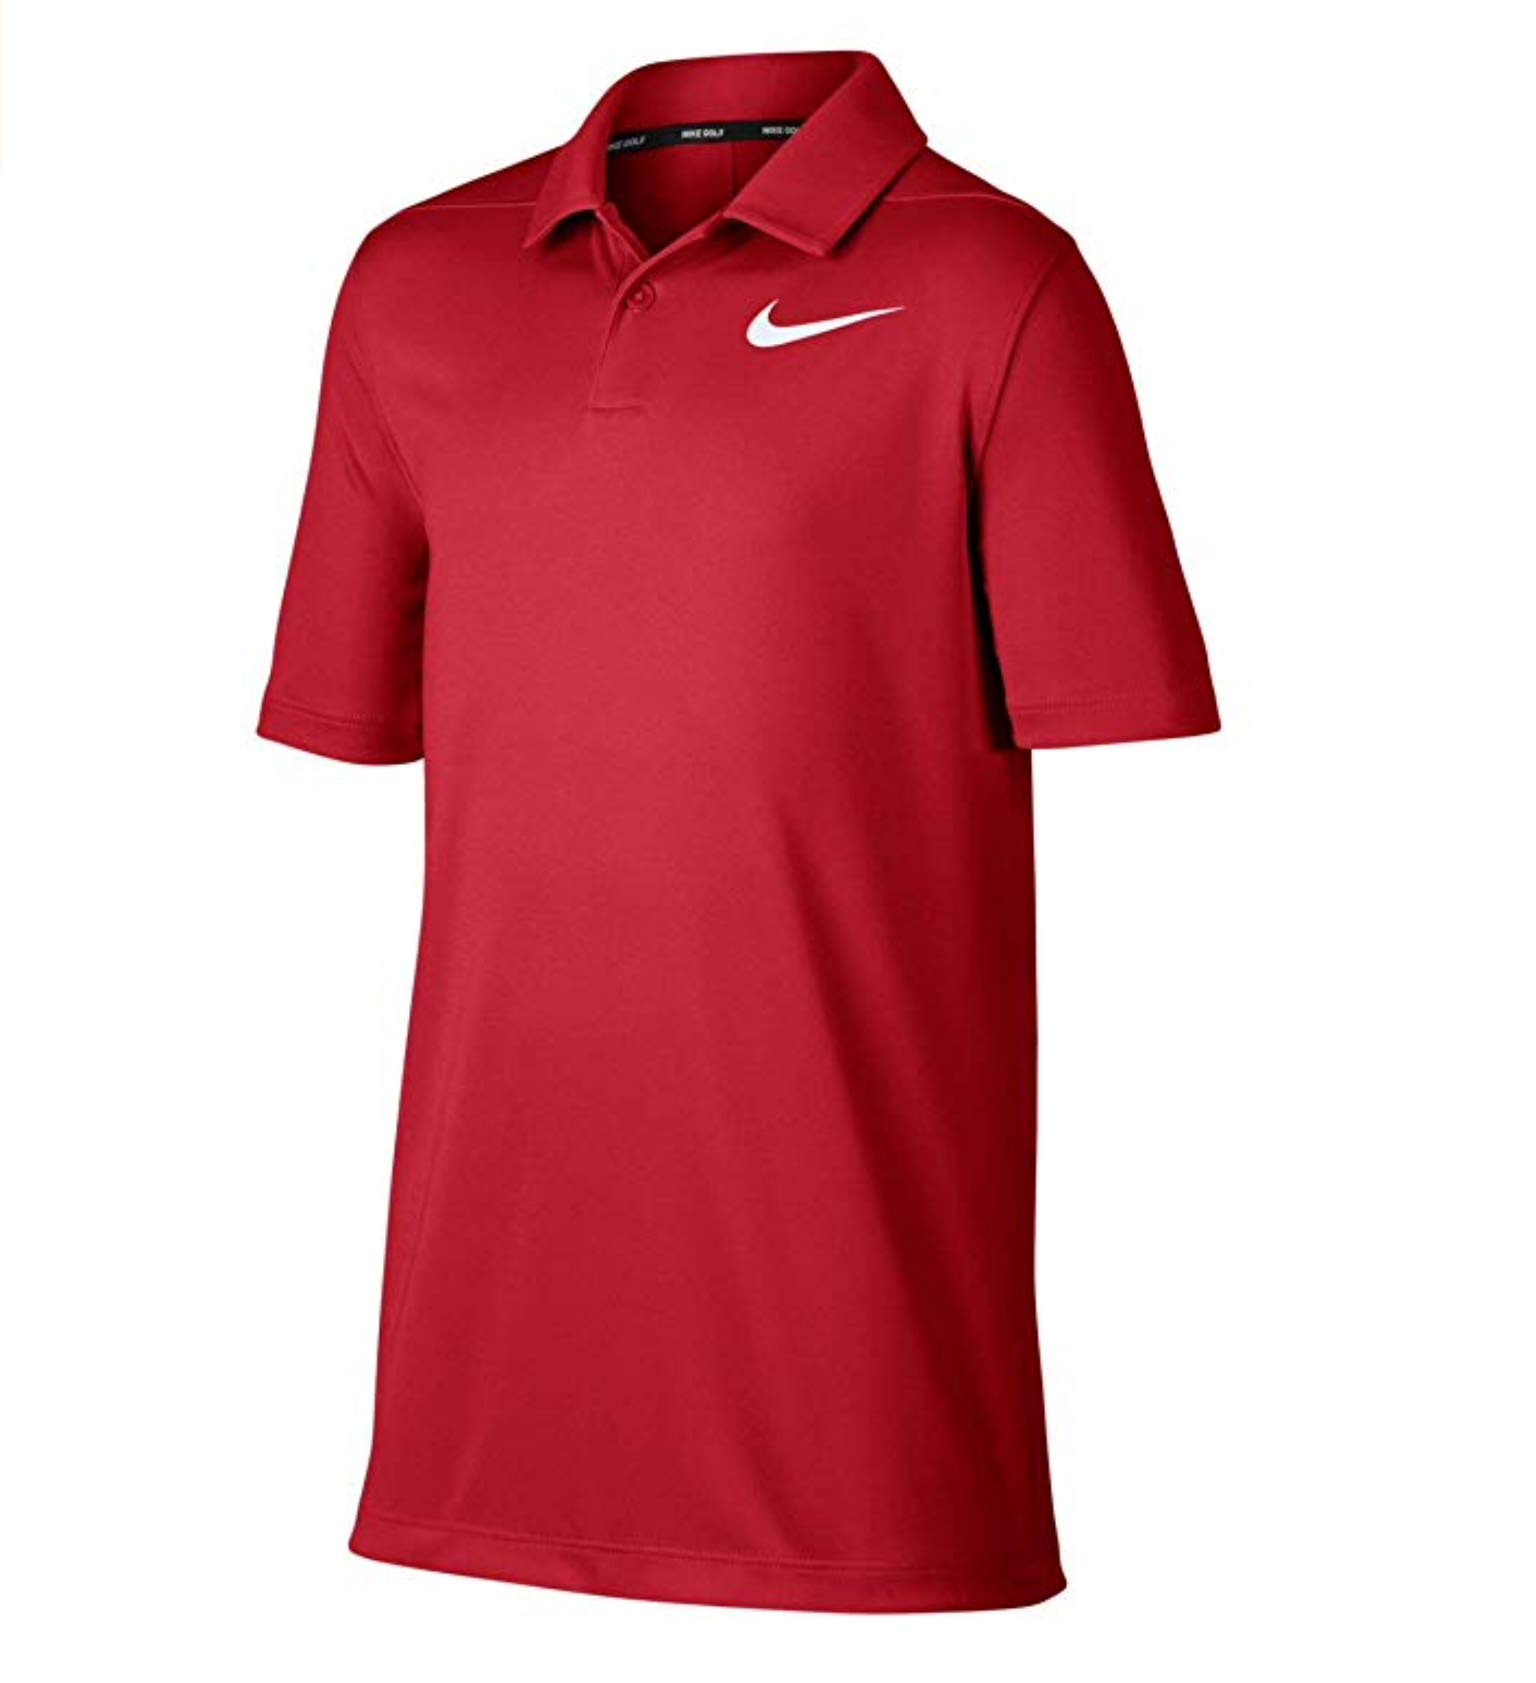 Boys' Victory Golf Polo Shirt (University Red, X-Large)